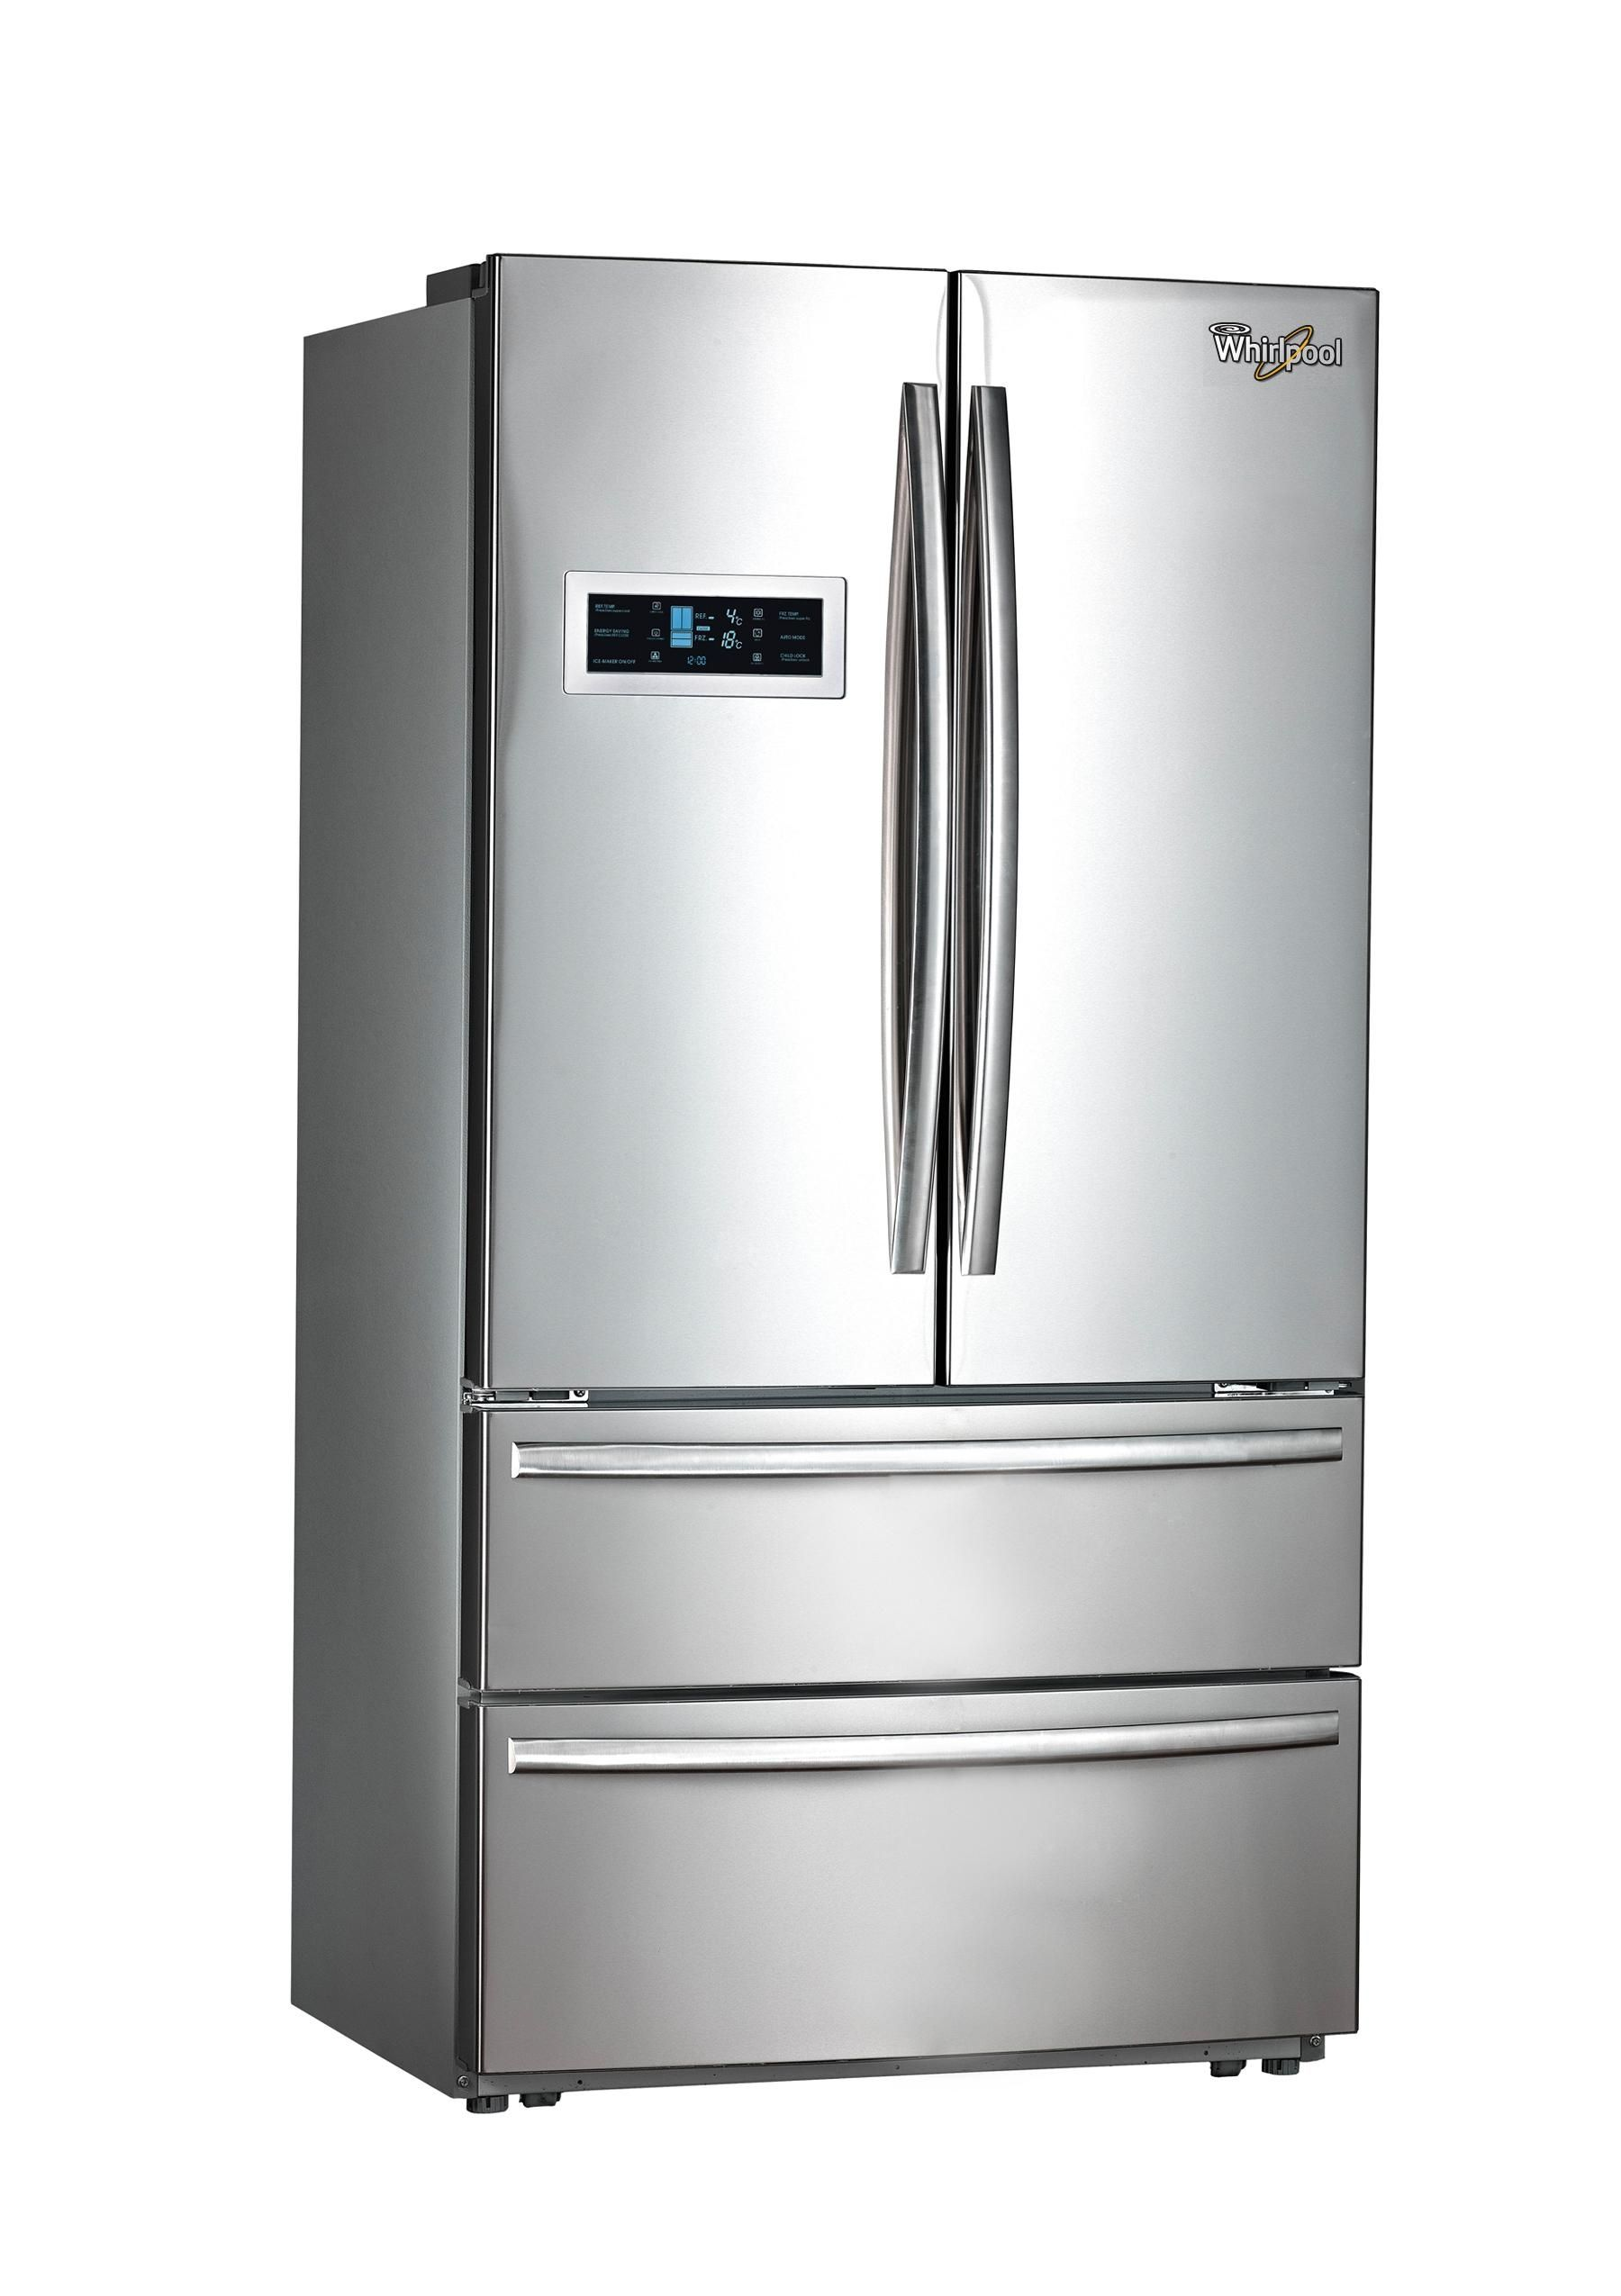 Double Door Refrigerators Whirlpool French doors, French